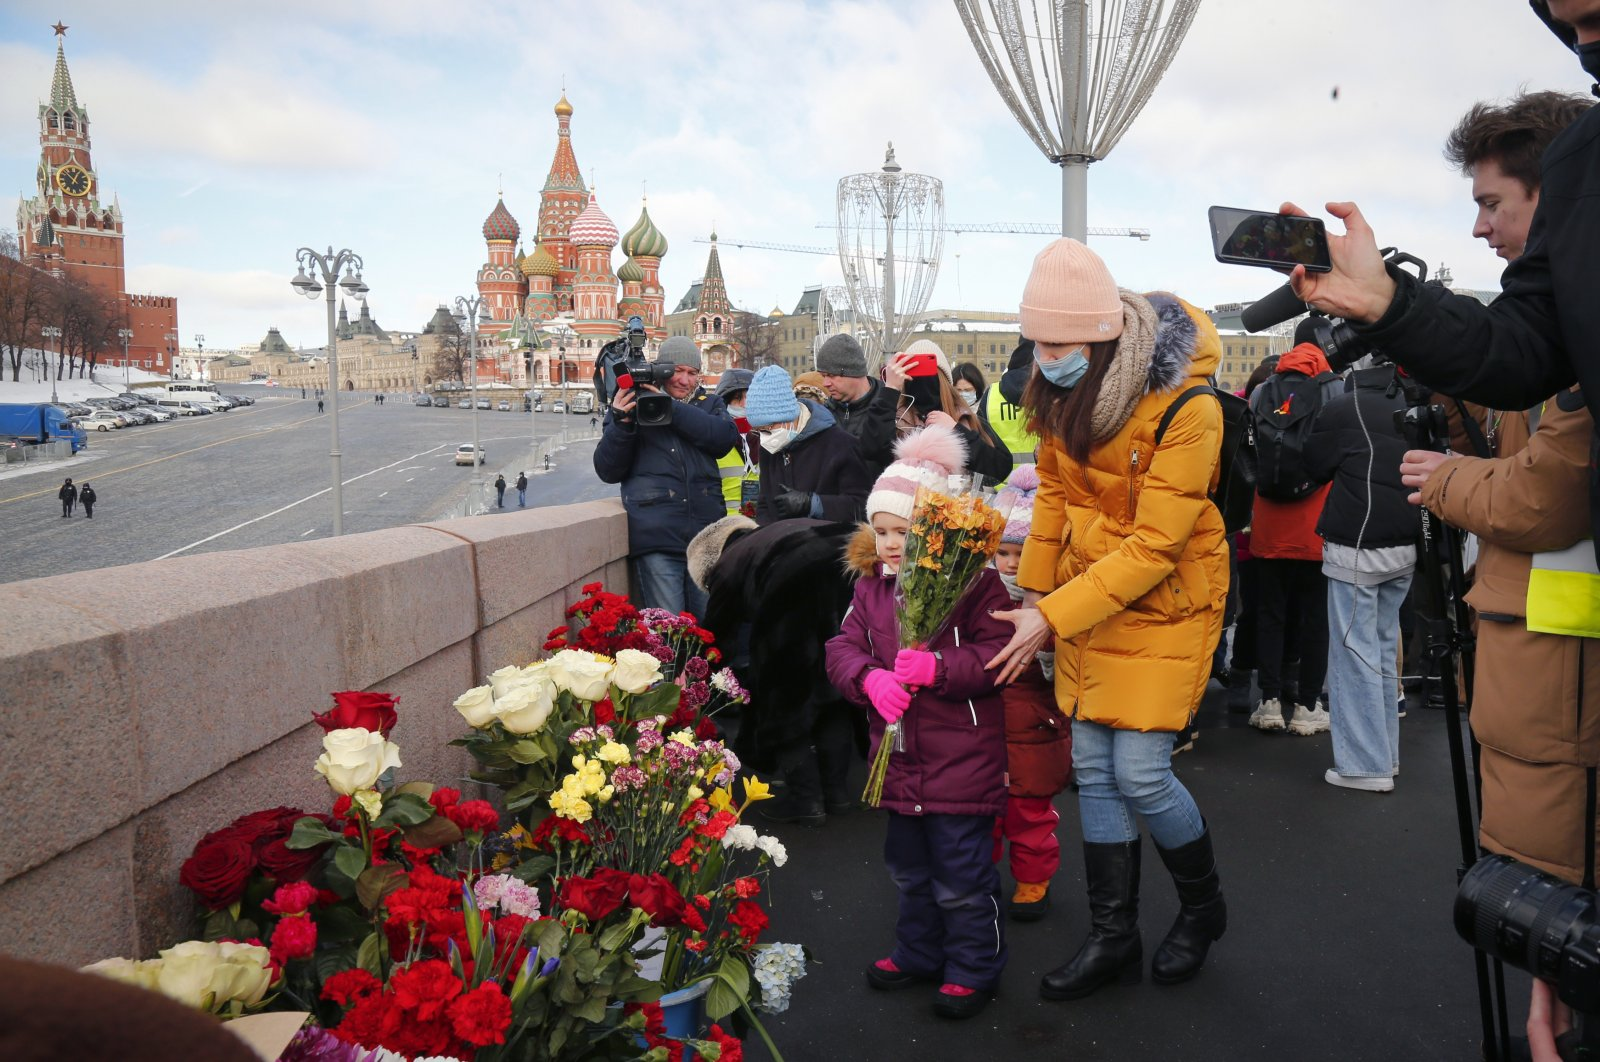 A woman with her children lays flowers near the spot where Russian opposition leader Boris Nemtsov was gunned down, in Moscow, Russia, Feb. 27, 2021. (AP Photo)